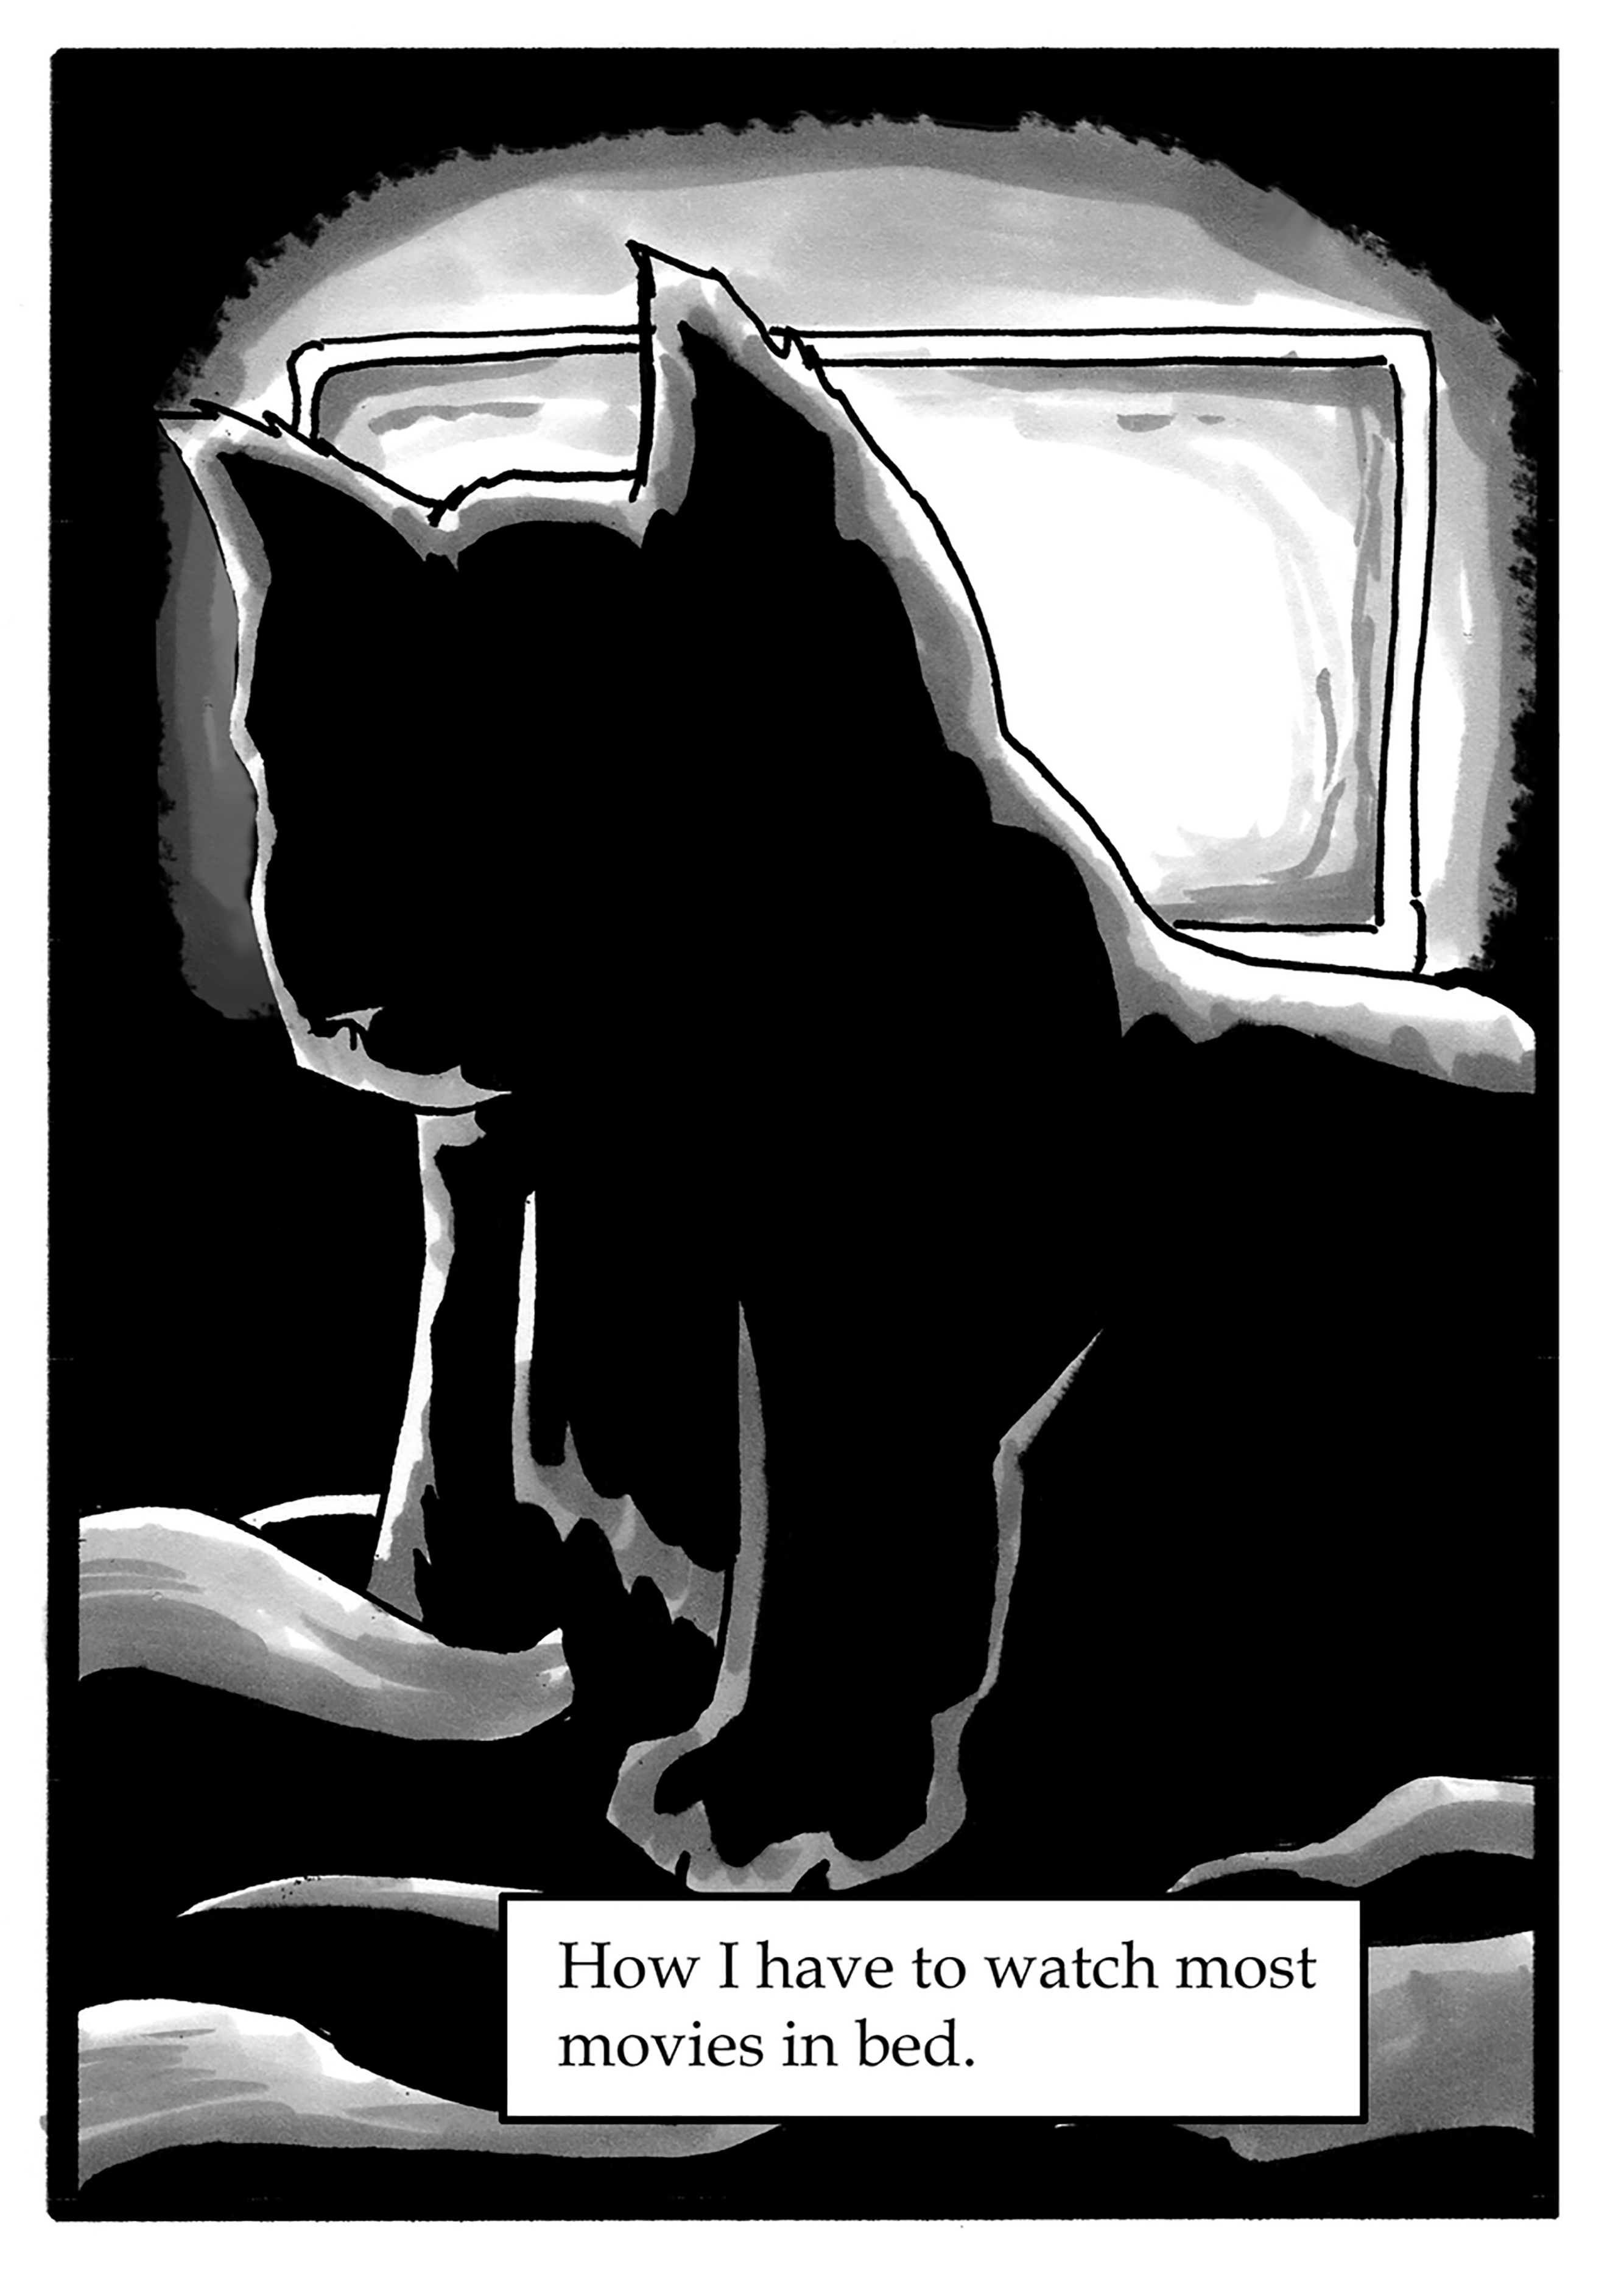 095 – Watching TV in bed